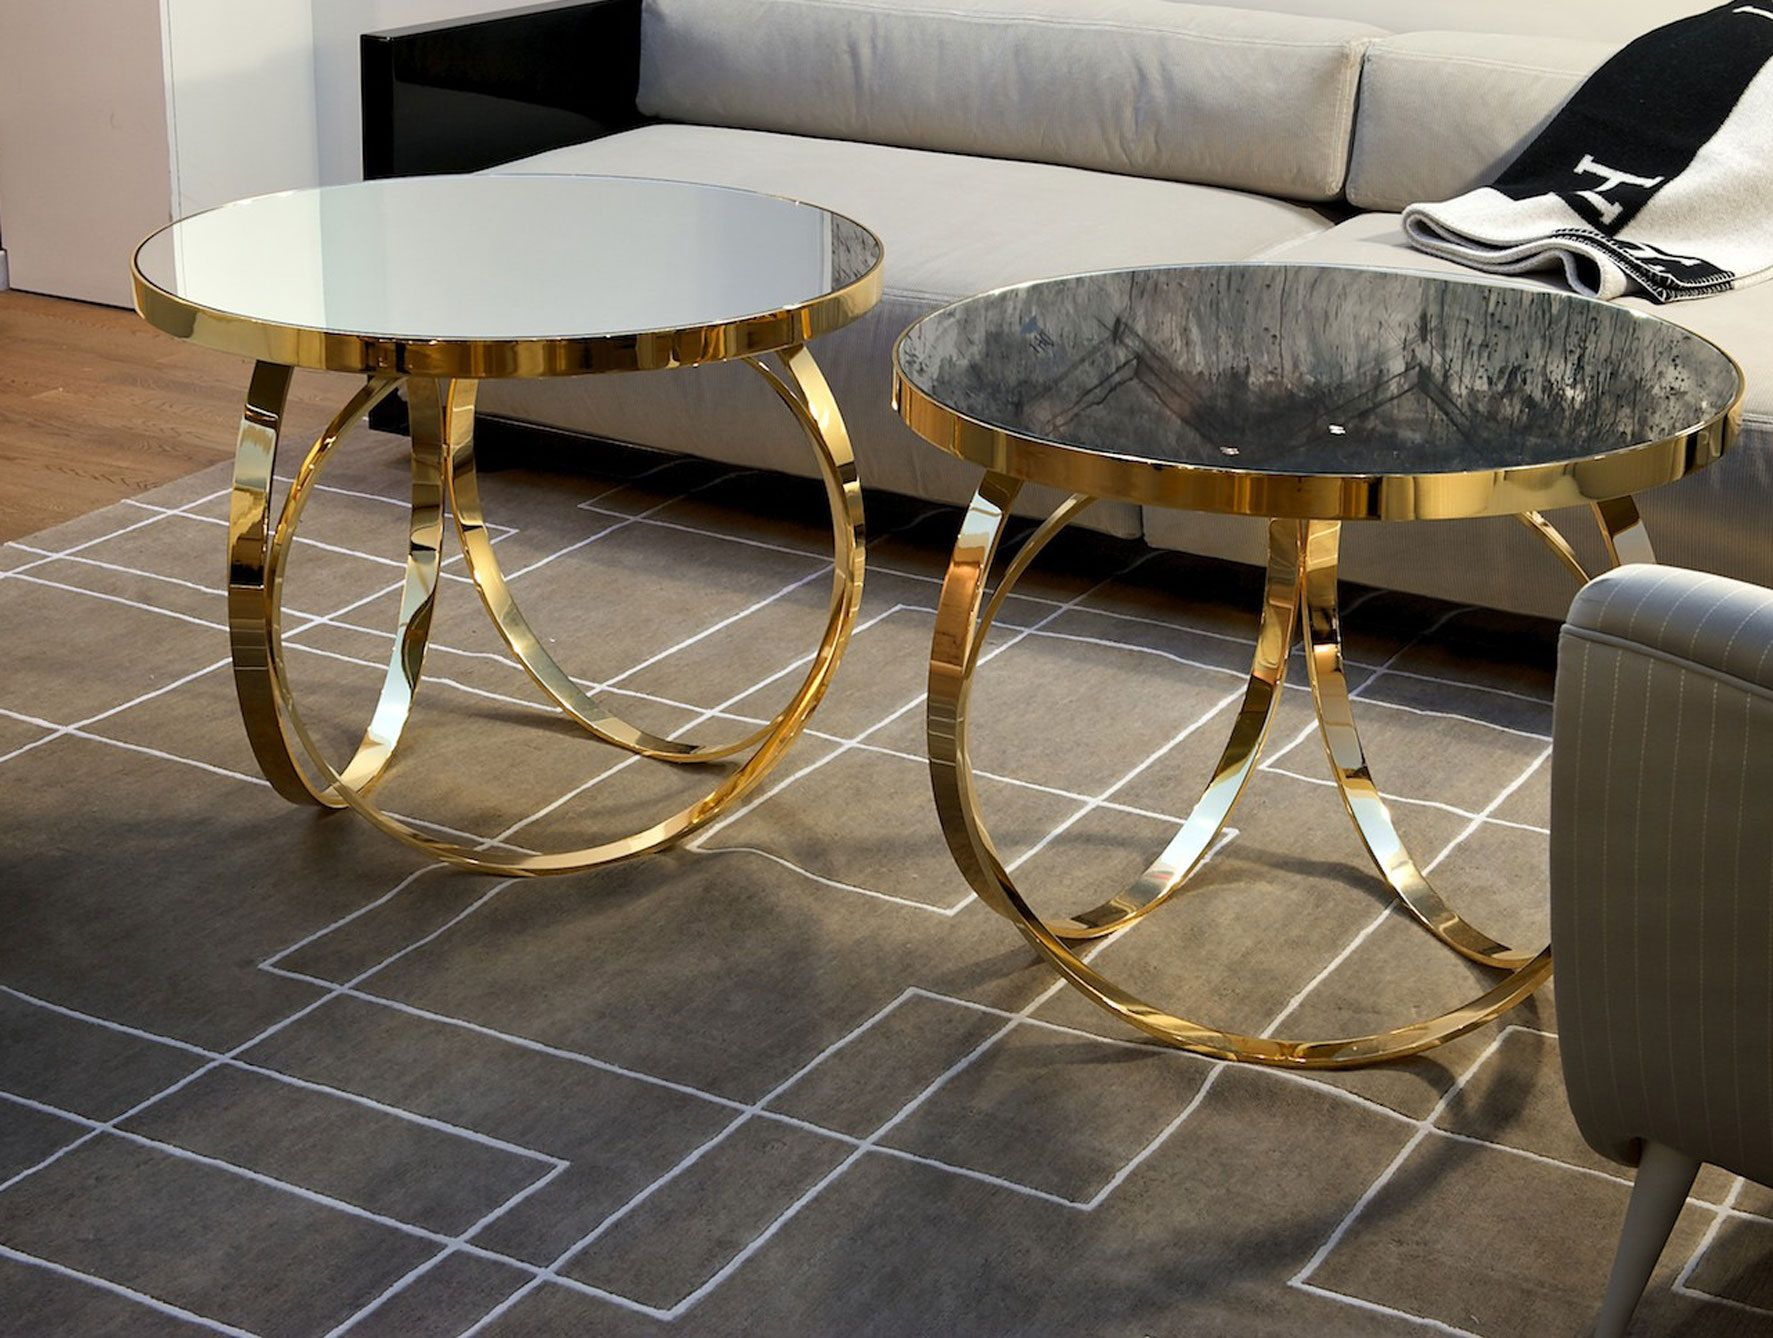 20 Gold Metal Coffee Table Home Office Furniture Desk Check More At Http